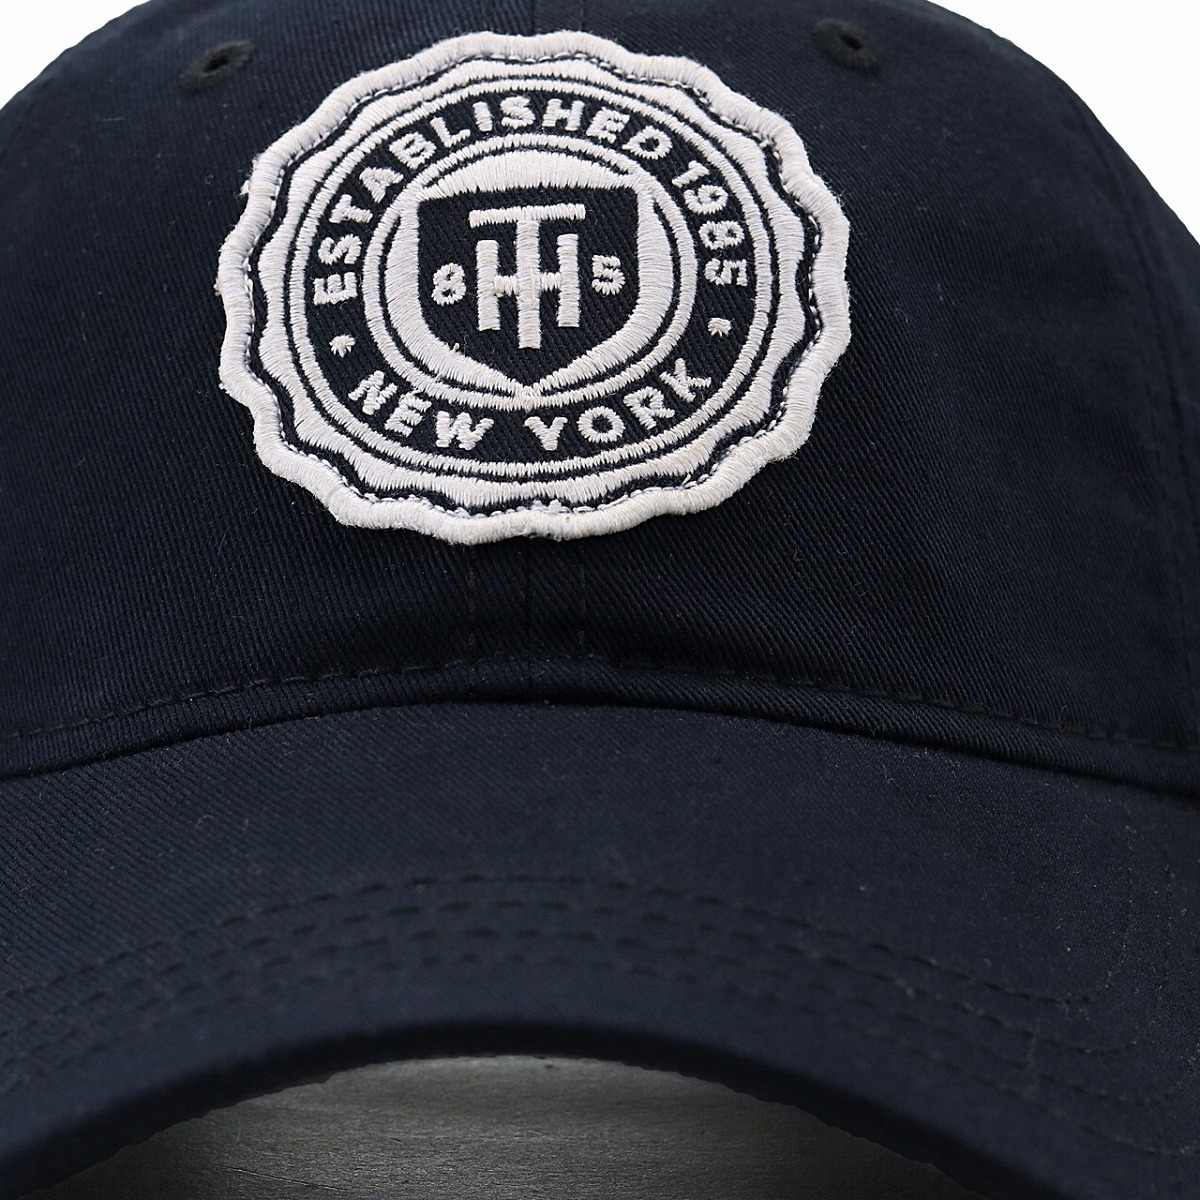 Cap Tommy Hilfiger Men Cotton Casual Sports Baseball Ladys Hat Dark Blue Navy Fathers Day Gift Birthday Present In The